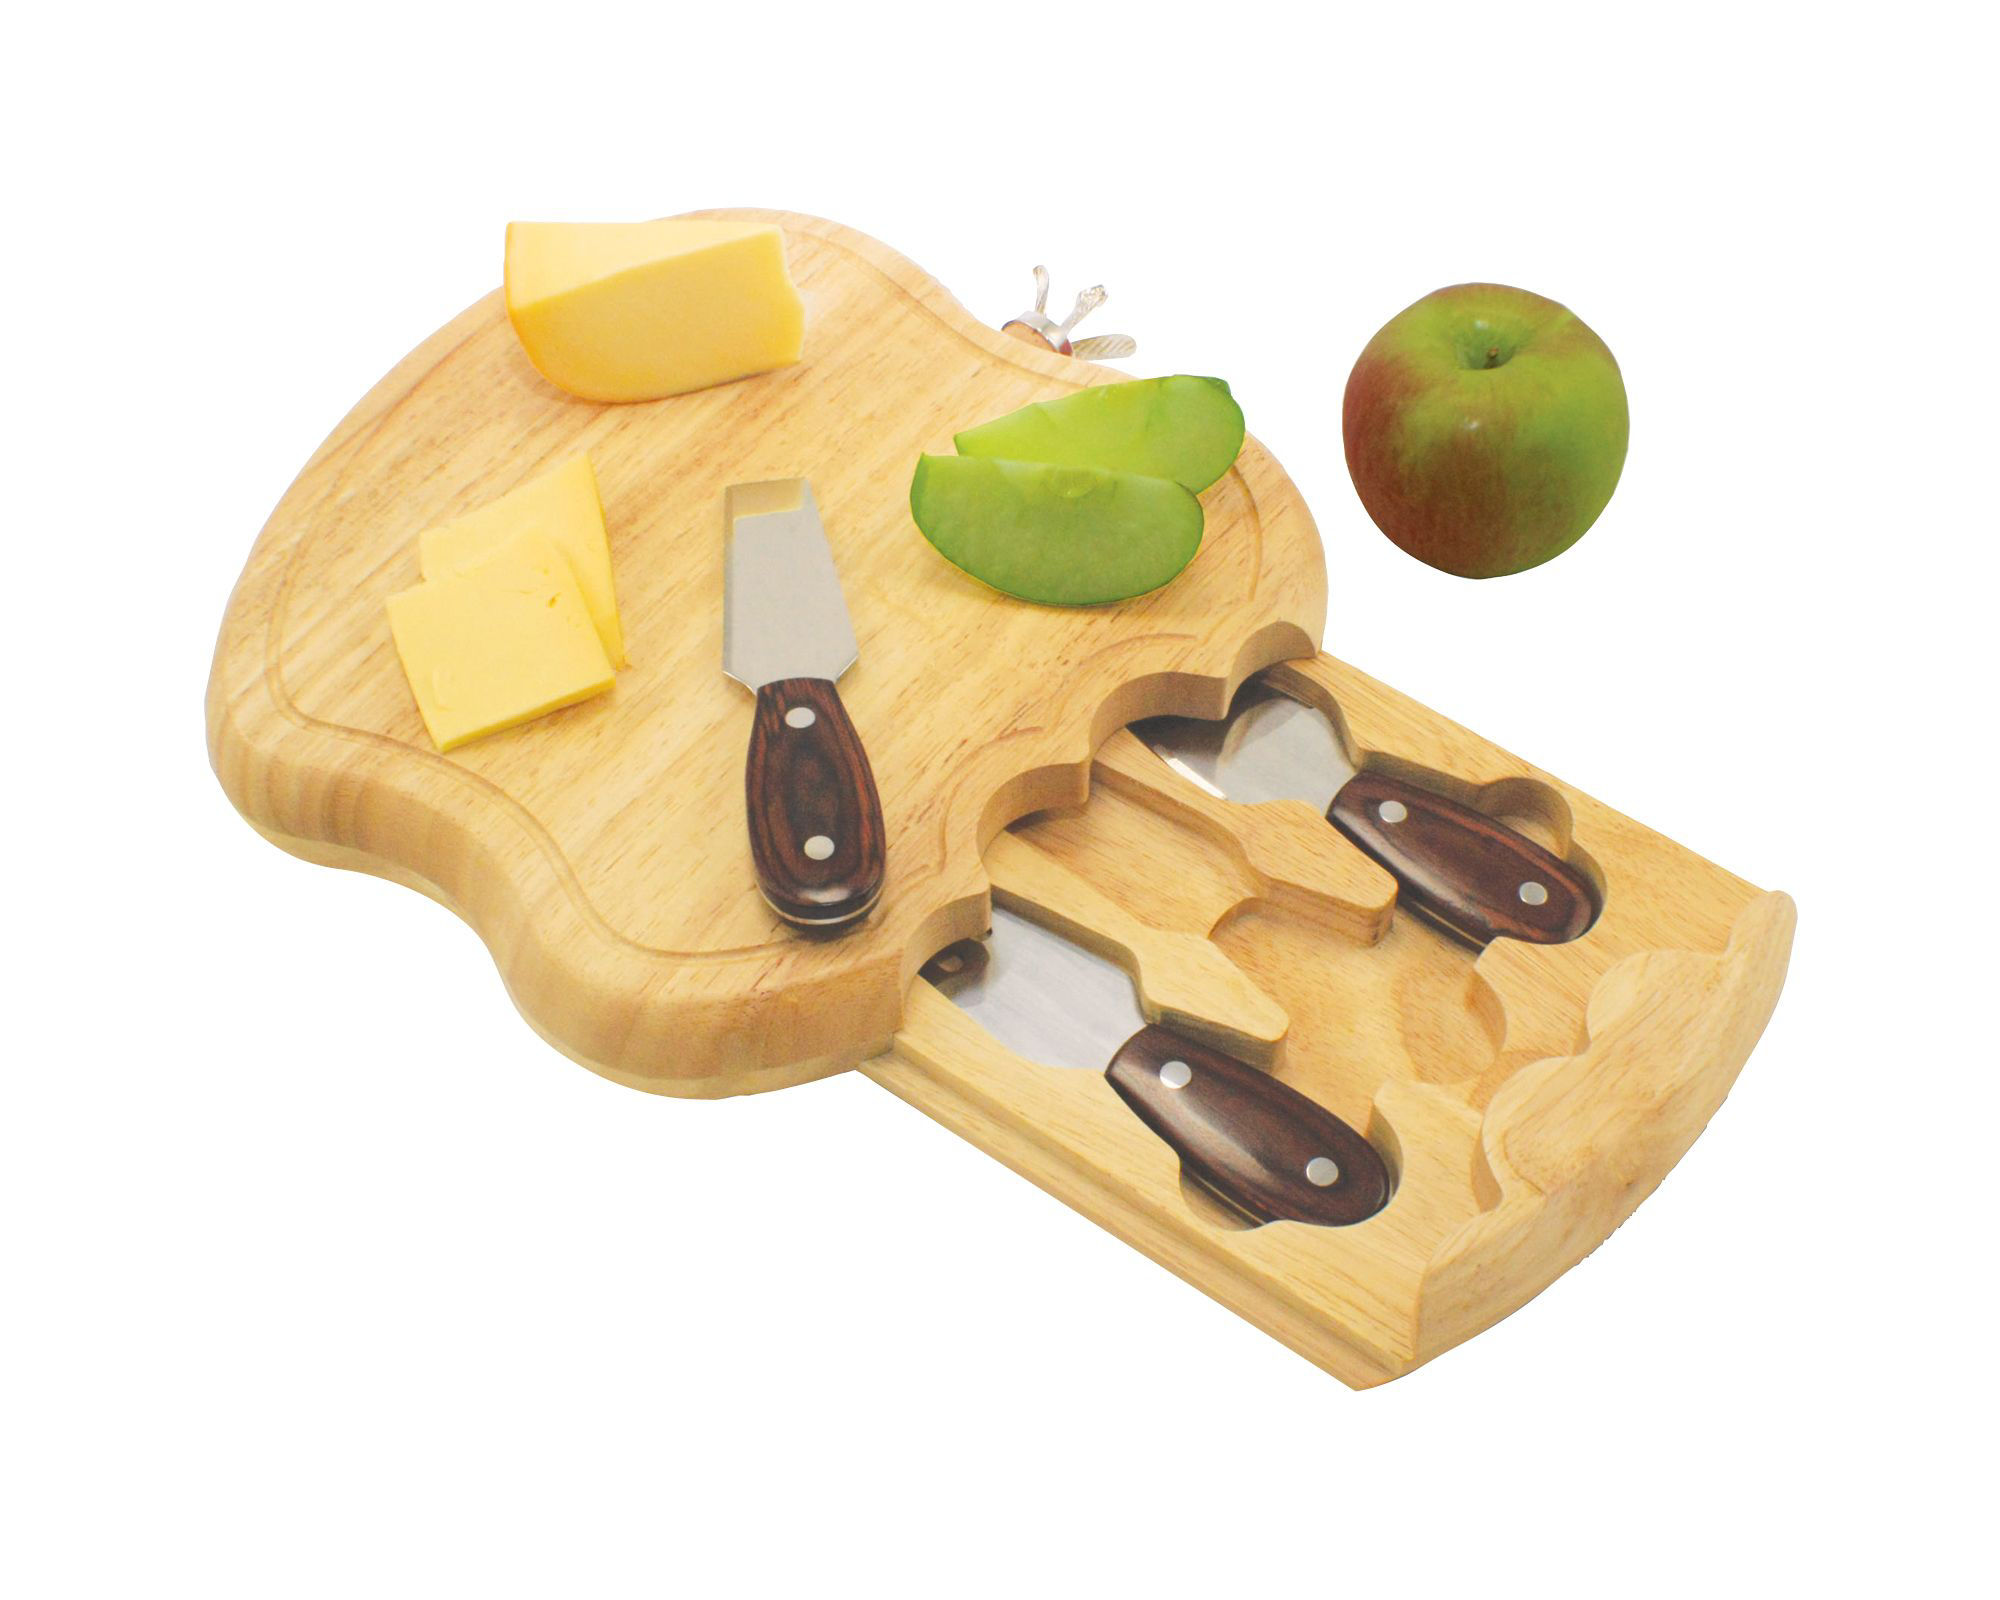 Picnic Time Apple Cheeseboard Apple, Apples, Apple Tree, Apple Trees, Dwarf Apple Tree, Fruit trees, Orchard Trees, Fruit Orchard